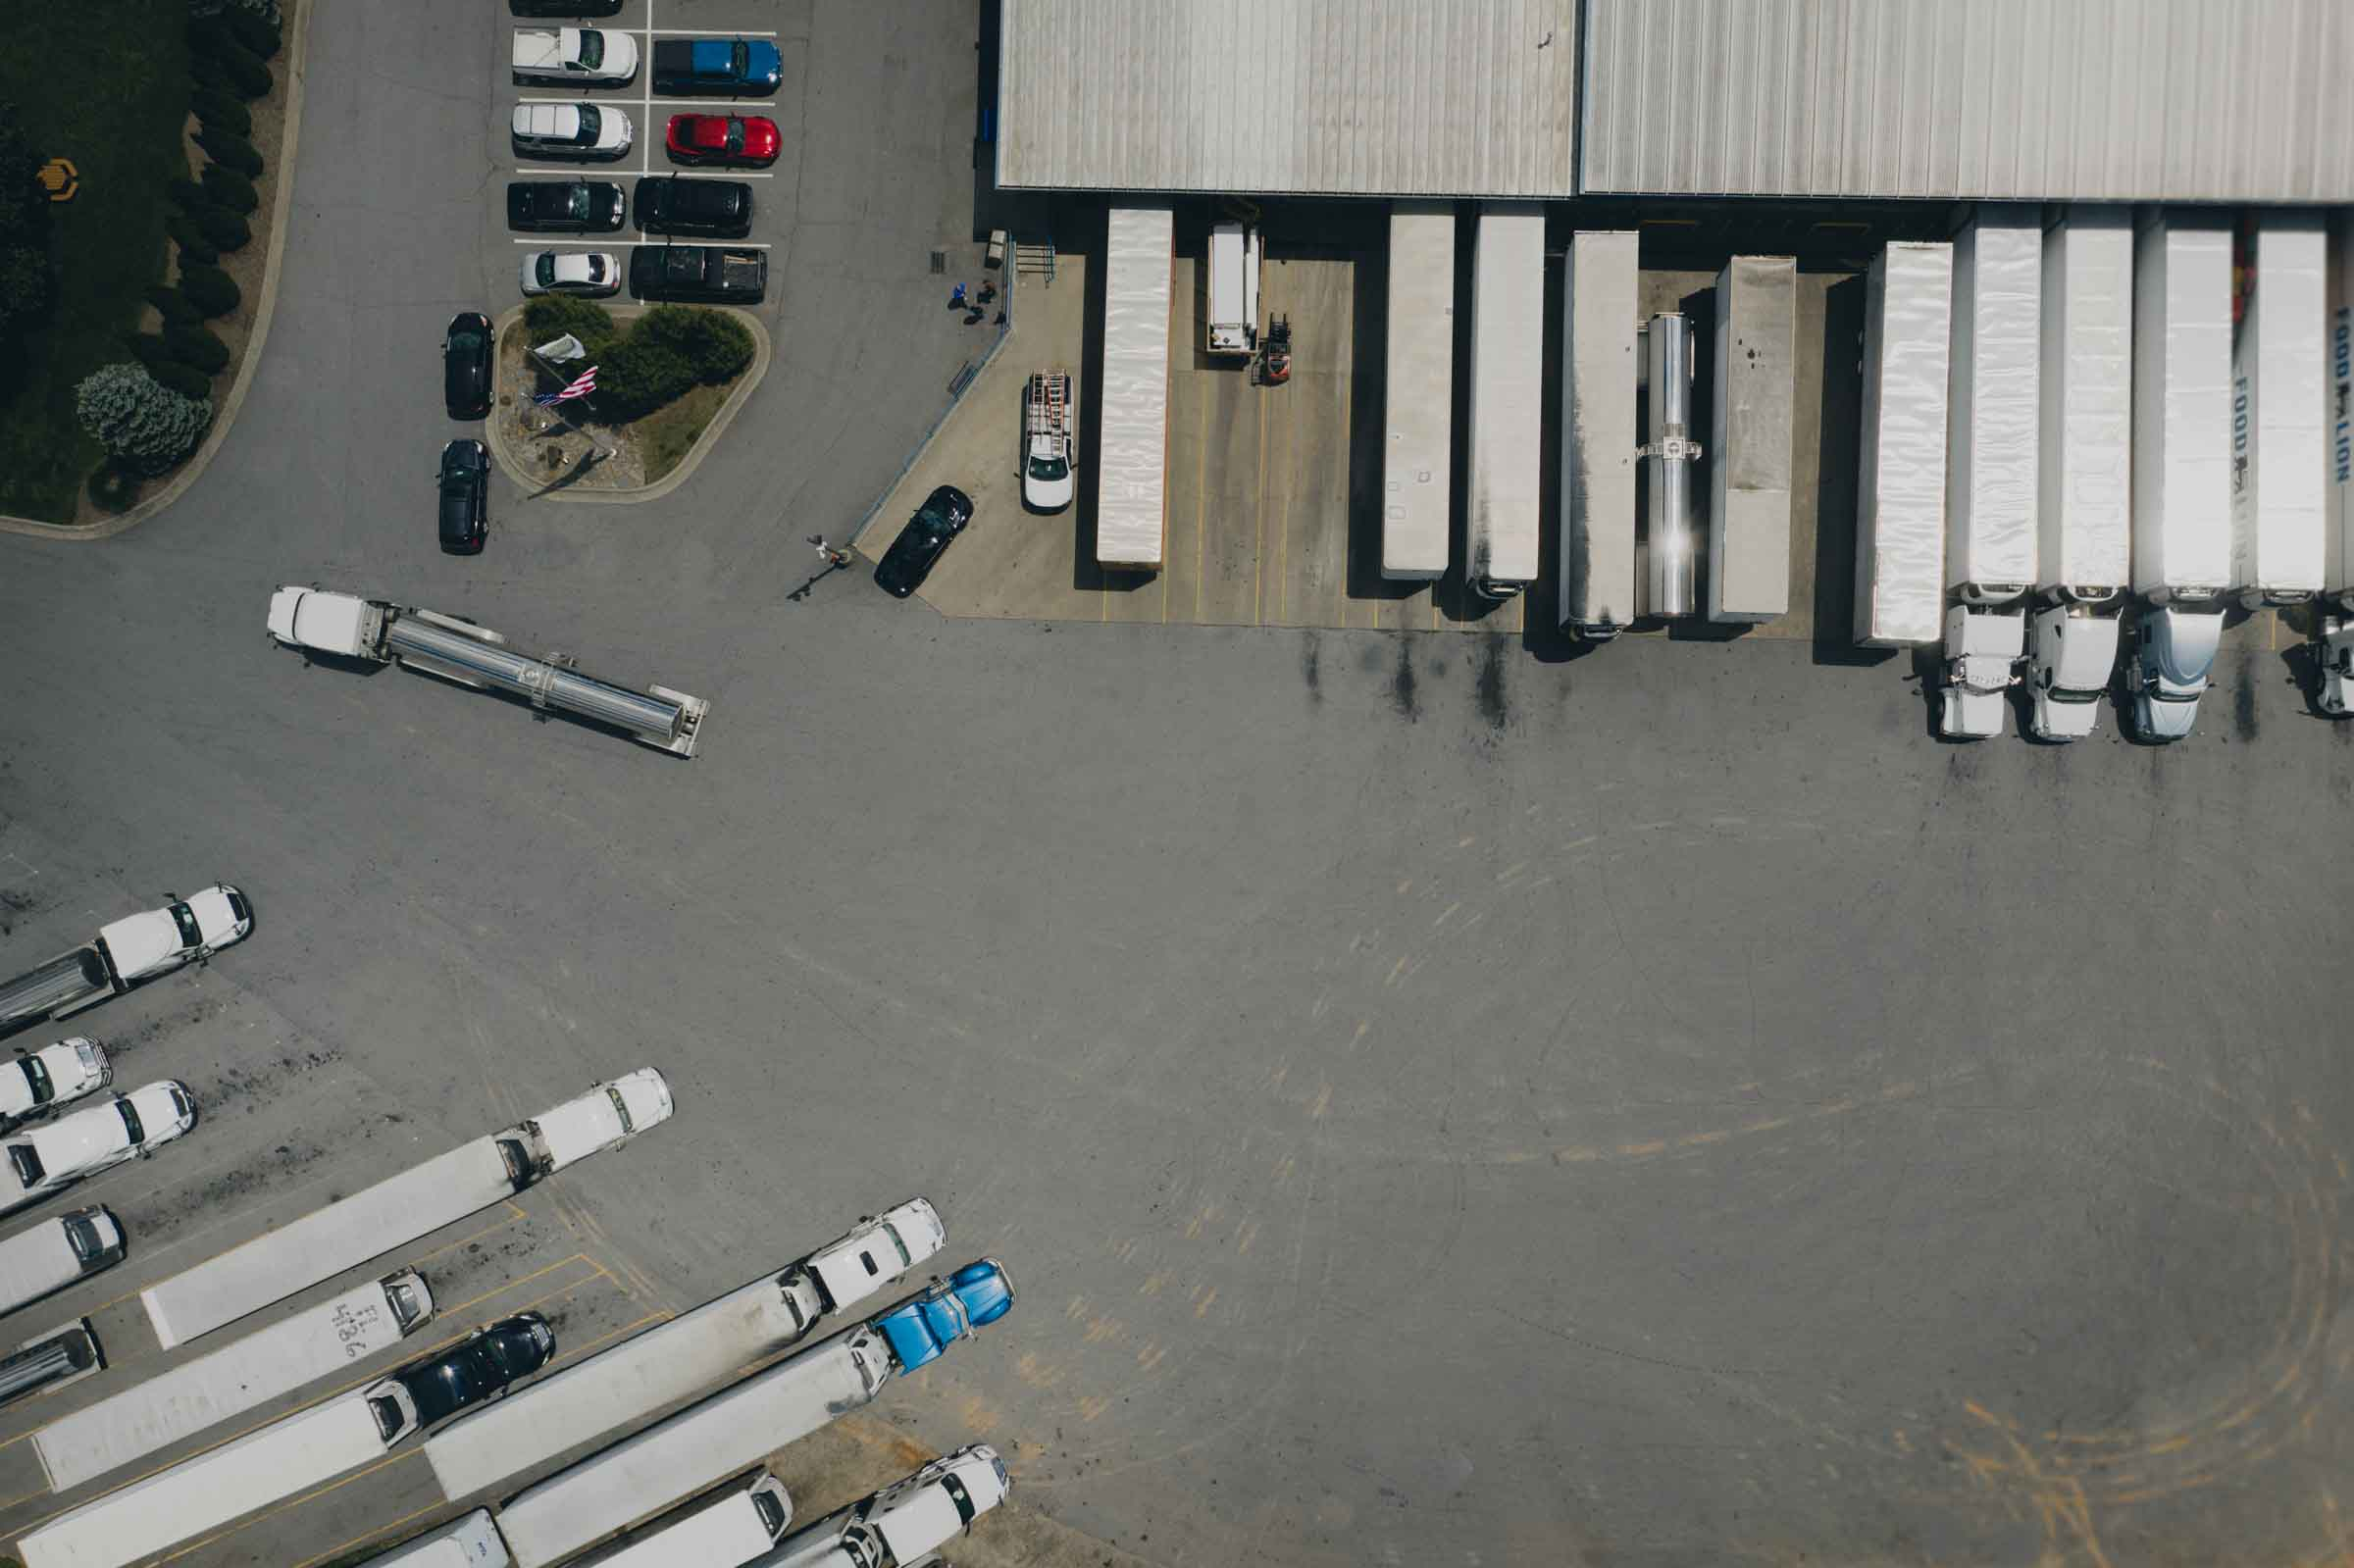 Arcadia's parking lot with lots of trucks dropping off and delivering products illustrating a single source supply chain